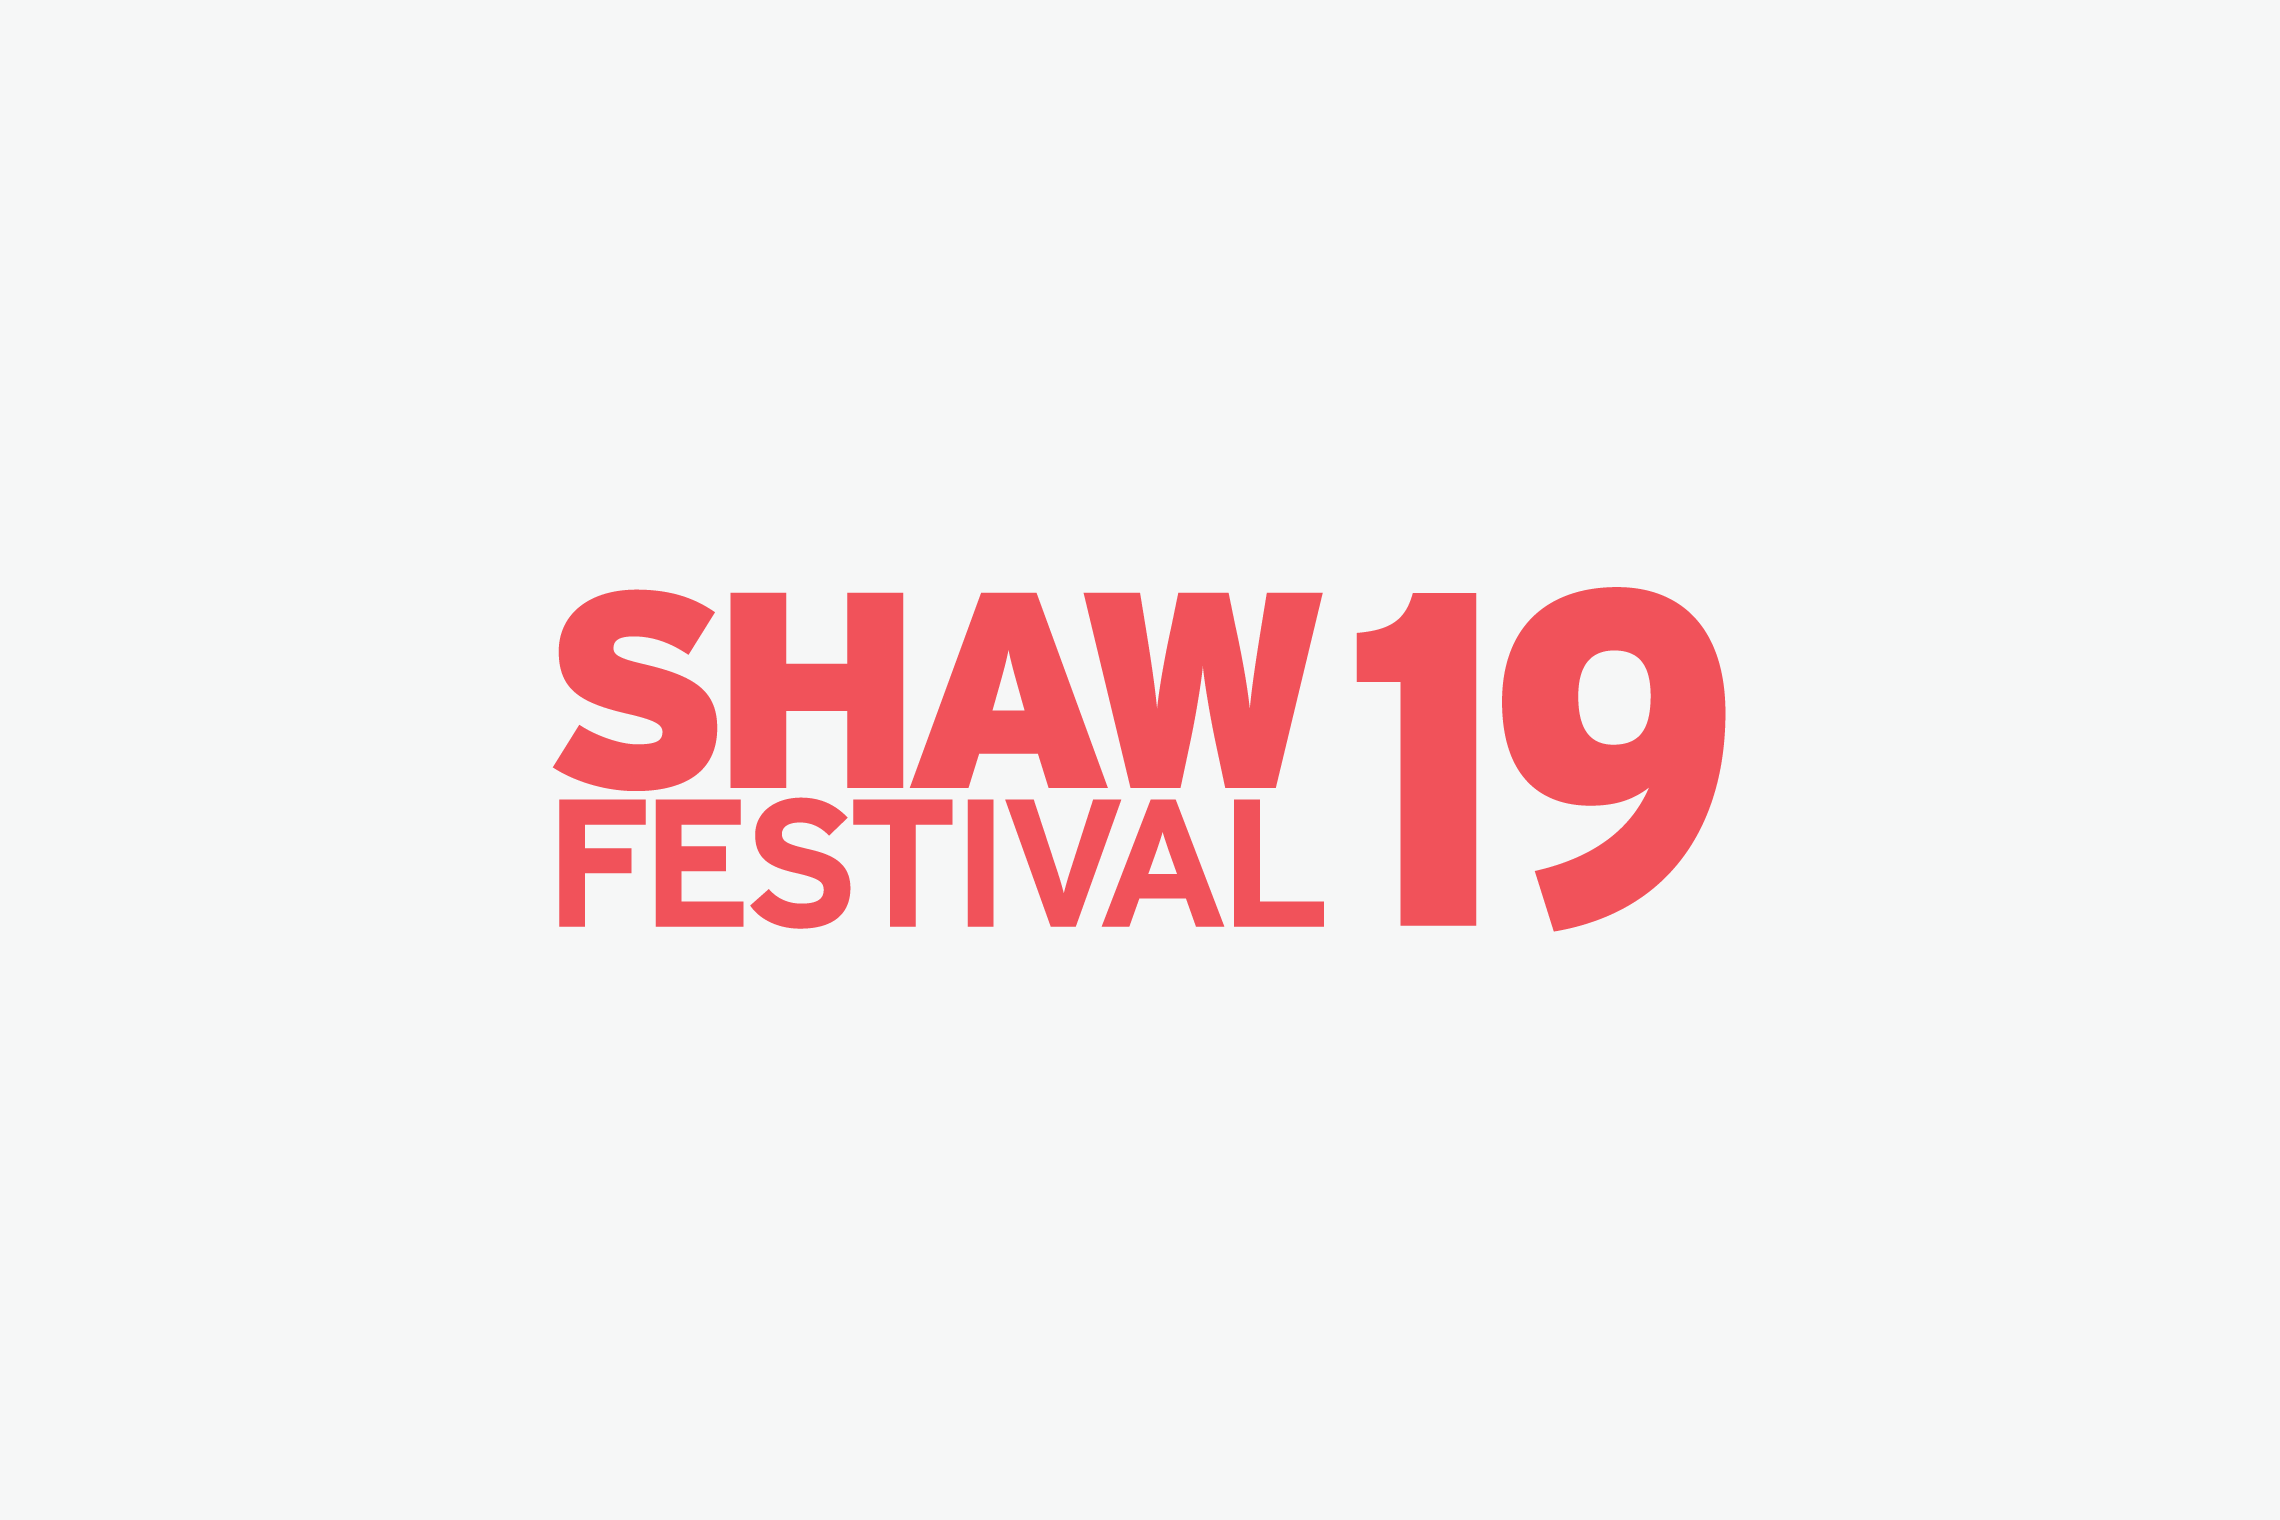 Shaw_ProjectImage_Logo_2280x1520